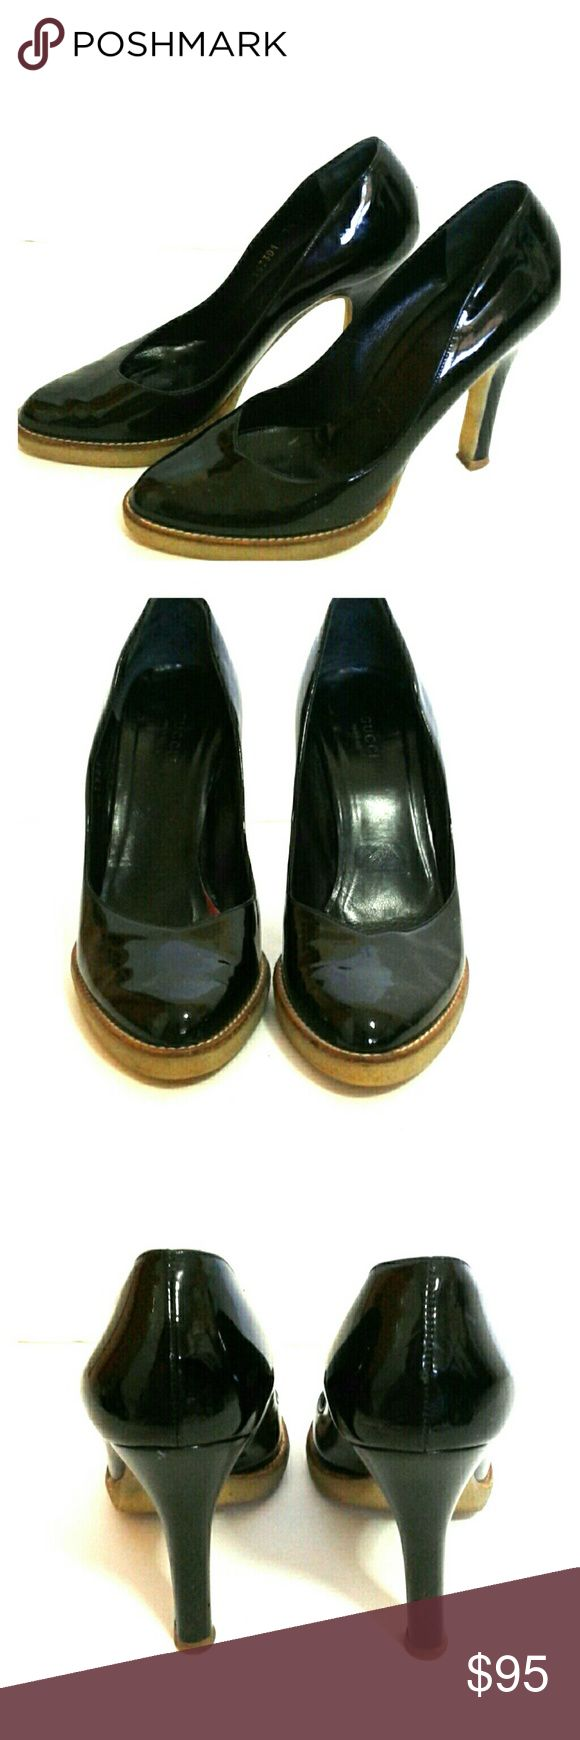 AUTHENTIC GUCCI PATENT LEATHER HIGH HELLS Gucci black patent leather size 7/2 pumps classics made in italy ,used little signs of wear but in good condition Gucci Shoes Heels